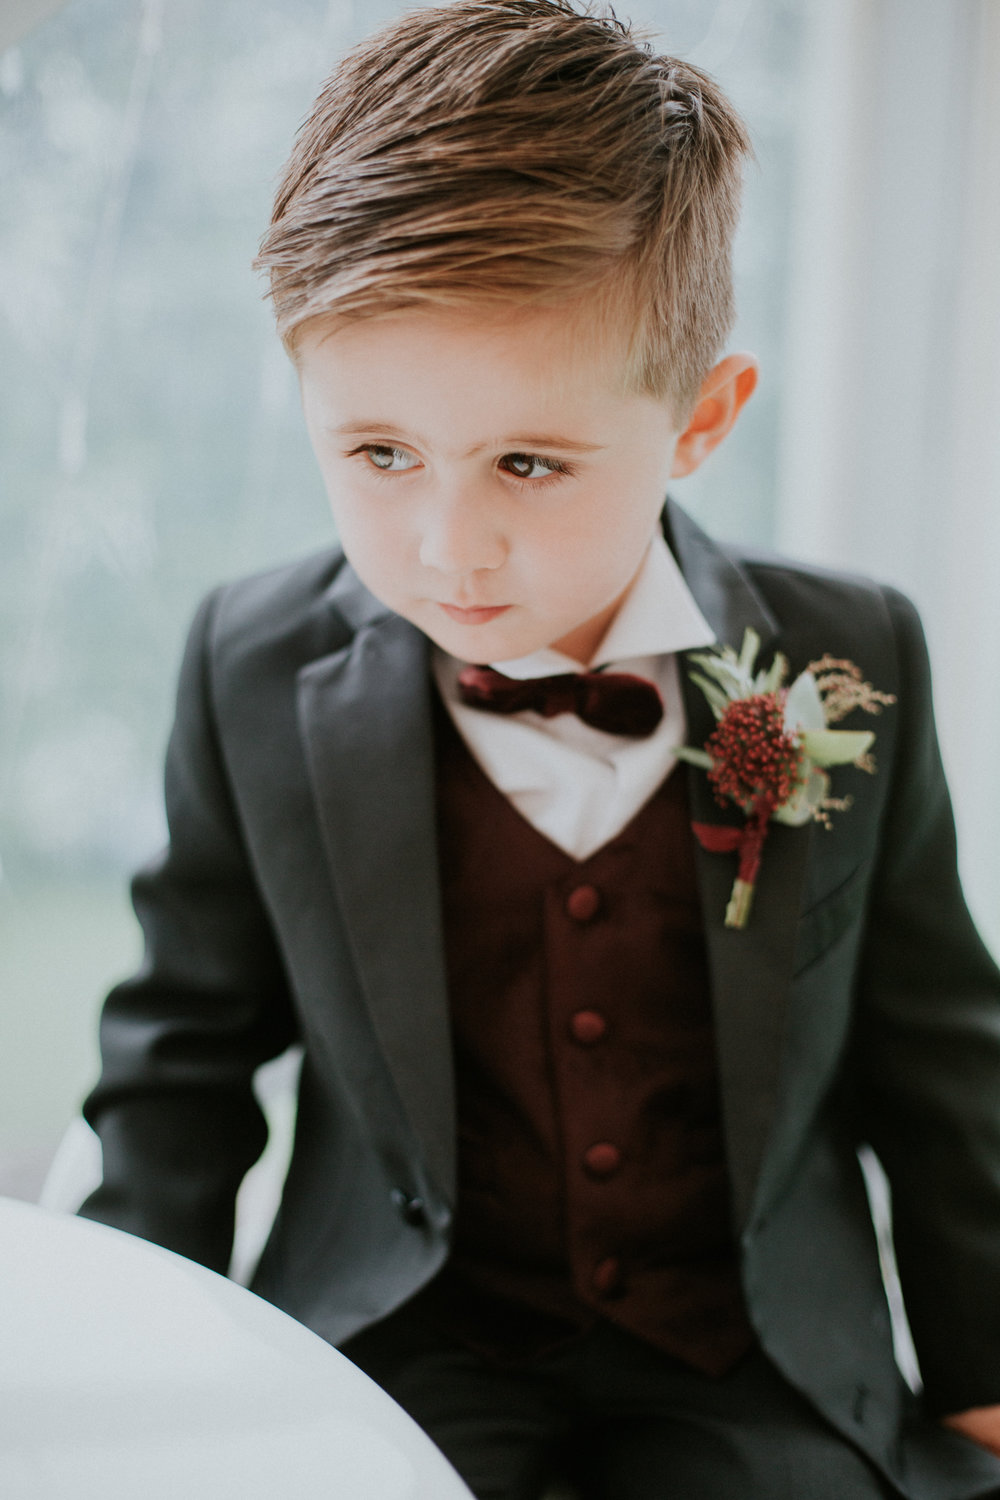 The portrait of the youngest son of the married couple